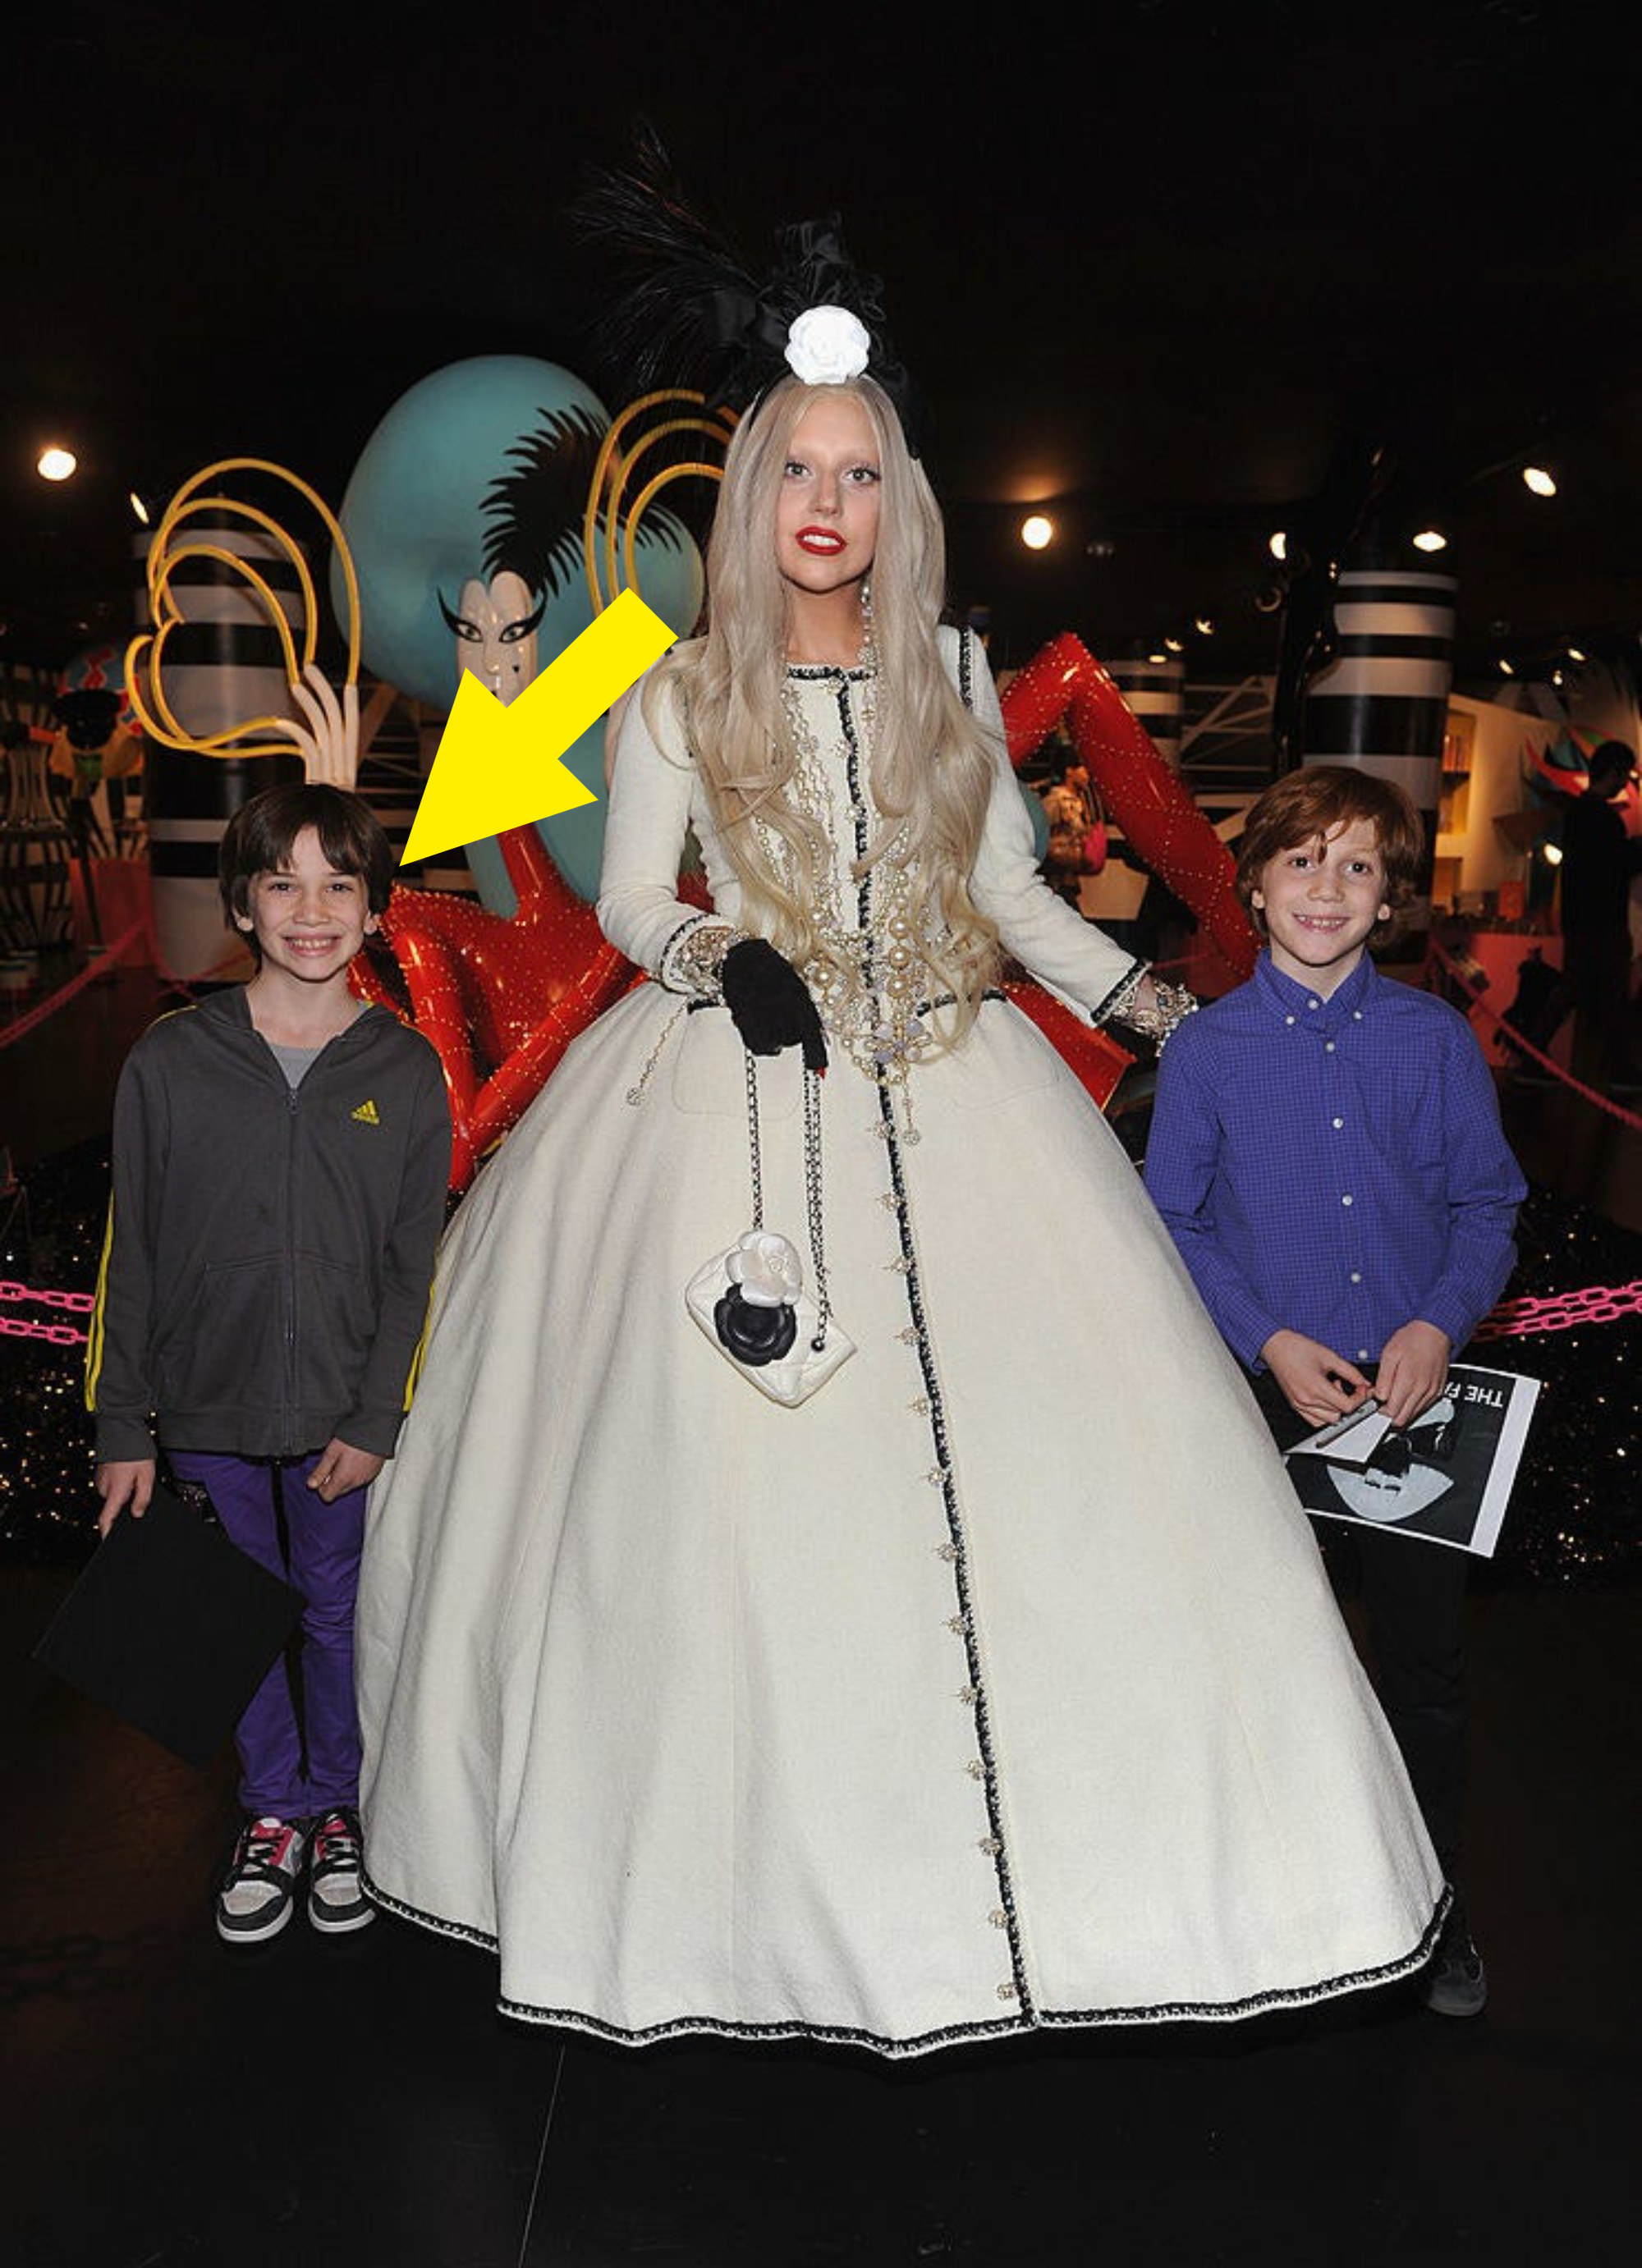 Lady Gaga is wearing a ballgown and matching floral headpiece as she poses for a photo with two young children, one of whom has an arrow pointing at him identifying him as Bill Gates